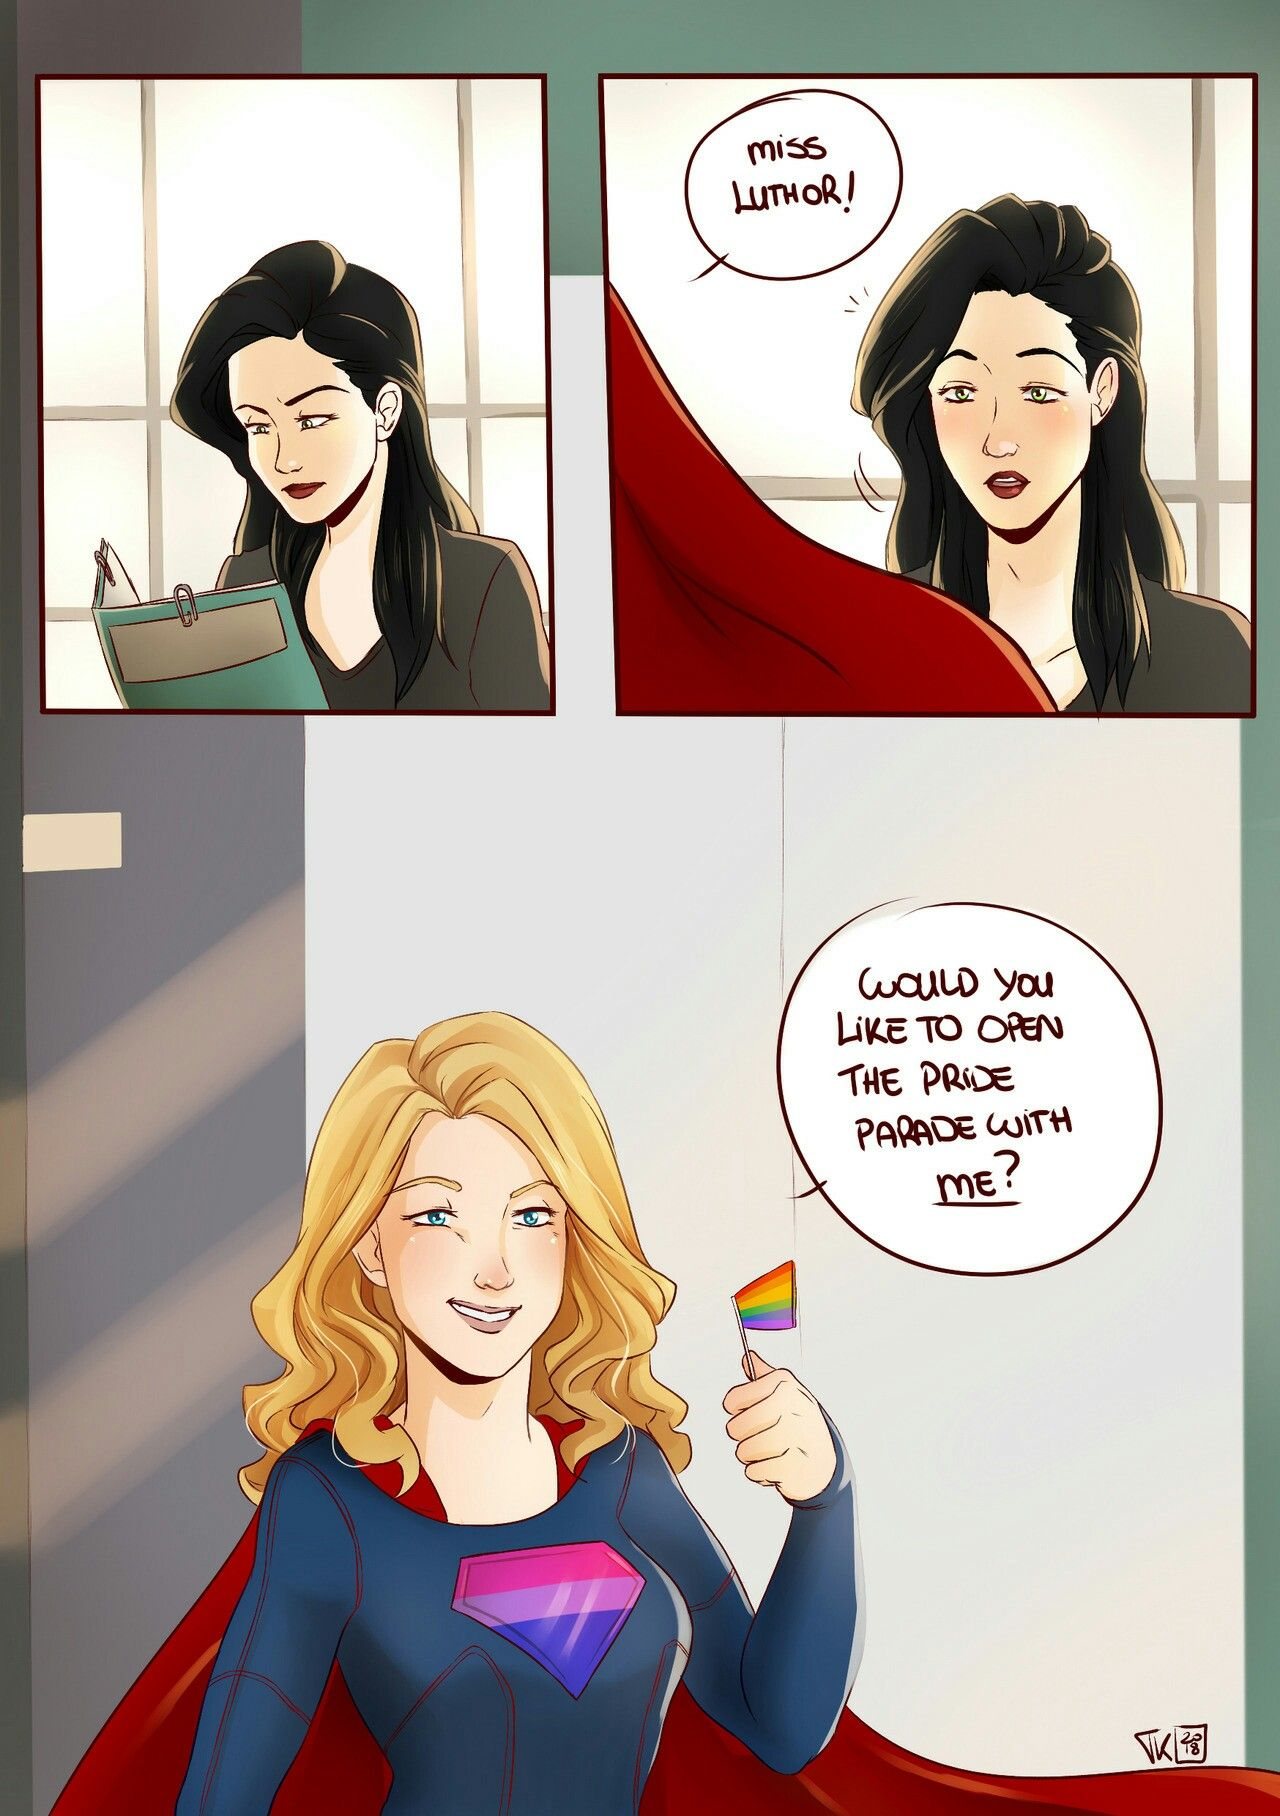 Pin By Theflashisawsome On Fanart Supergirl Comic Kara Danvers Supergirl Supergirl Tv